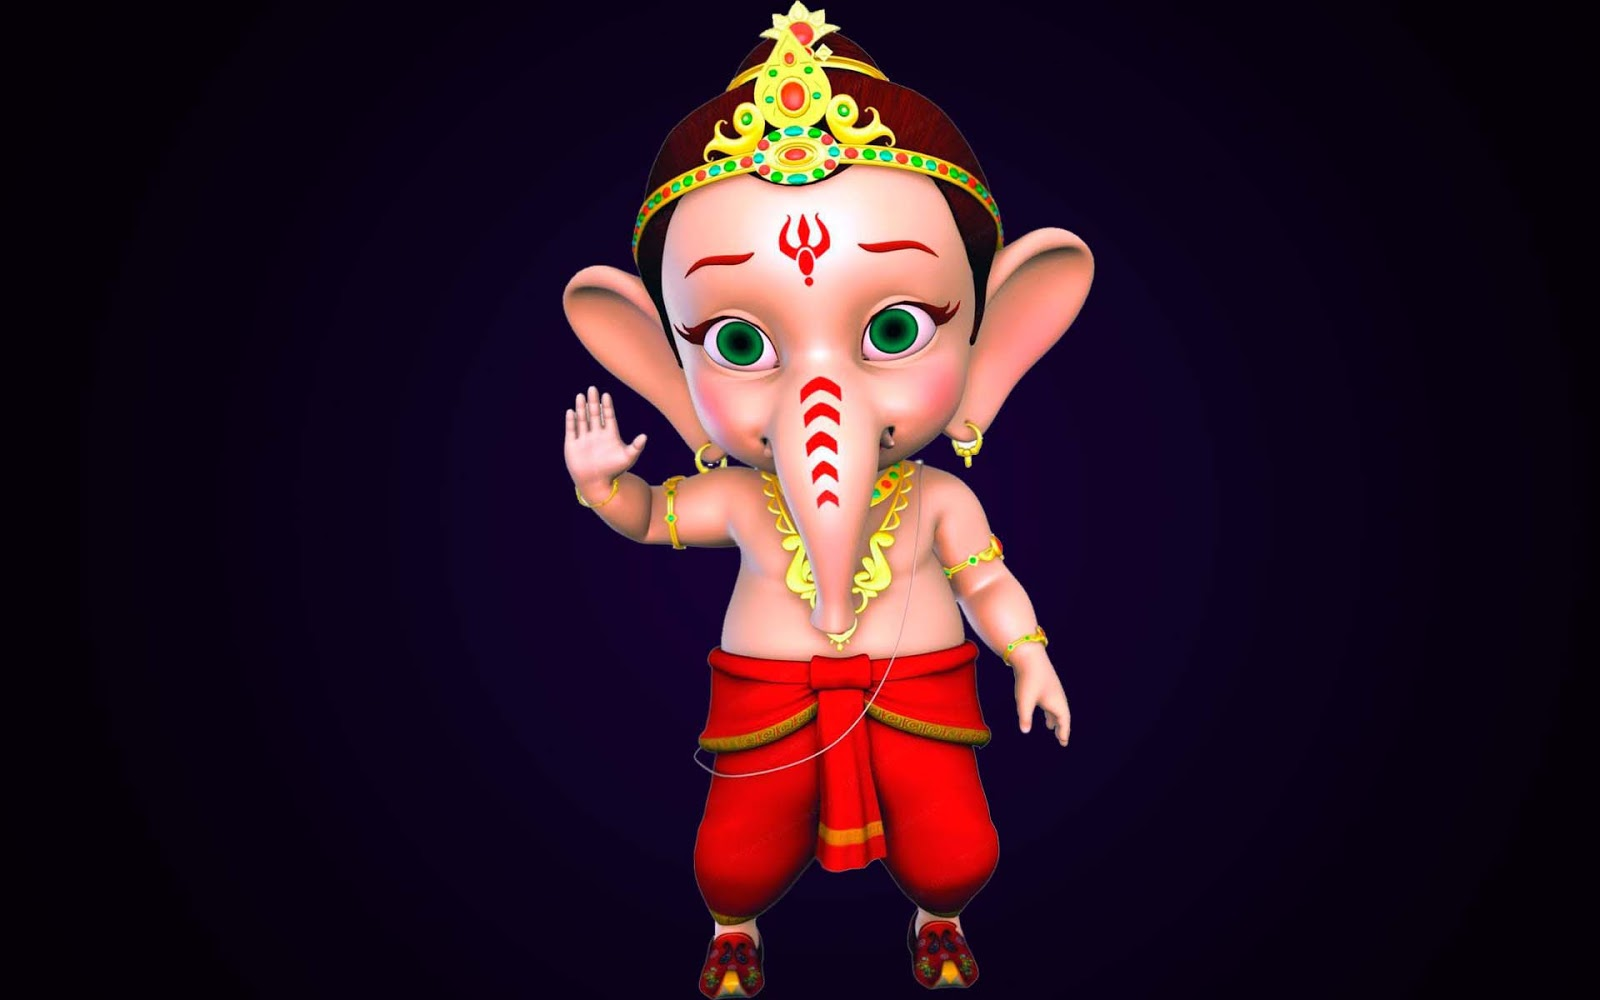 Lord Ganesha Hd Wallpapers: Ganesha HD New Wallpapers Free Download